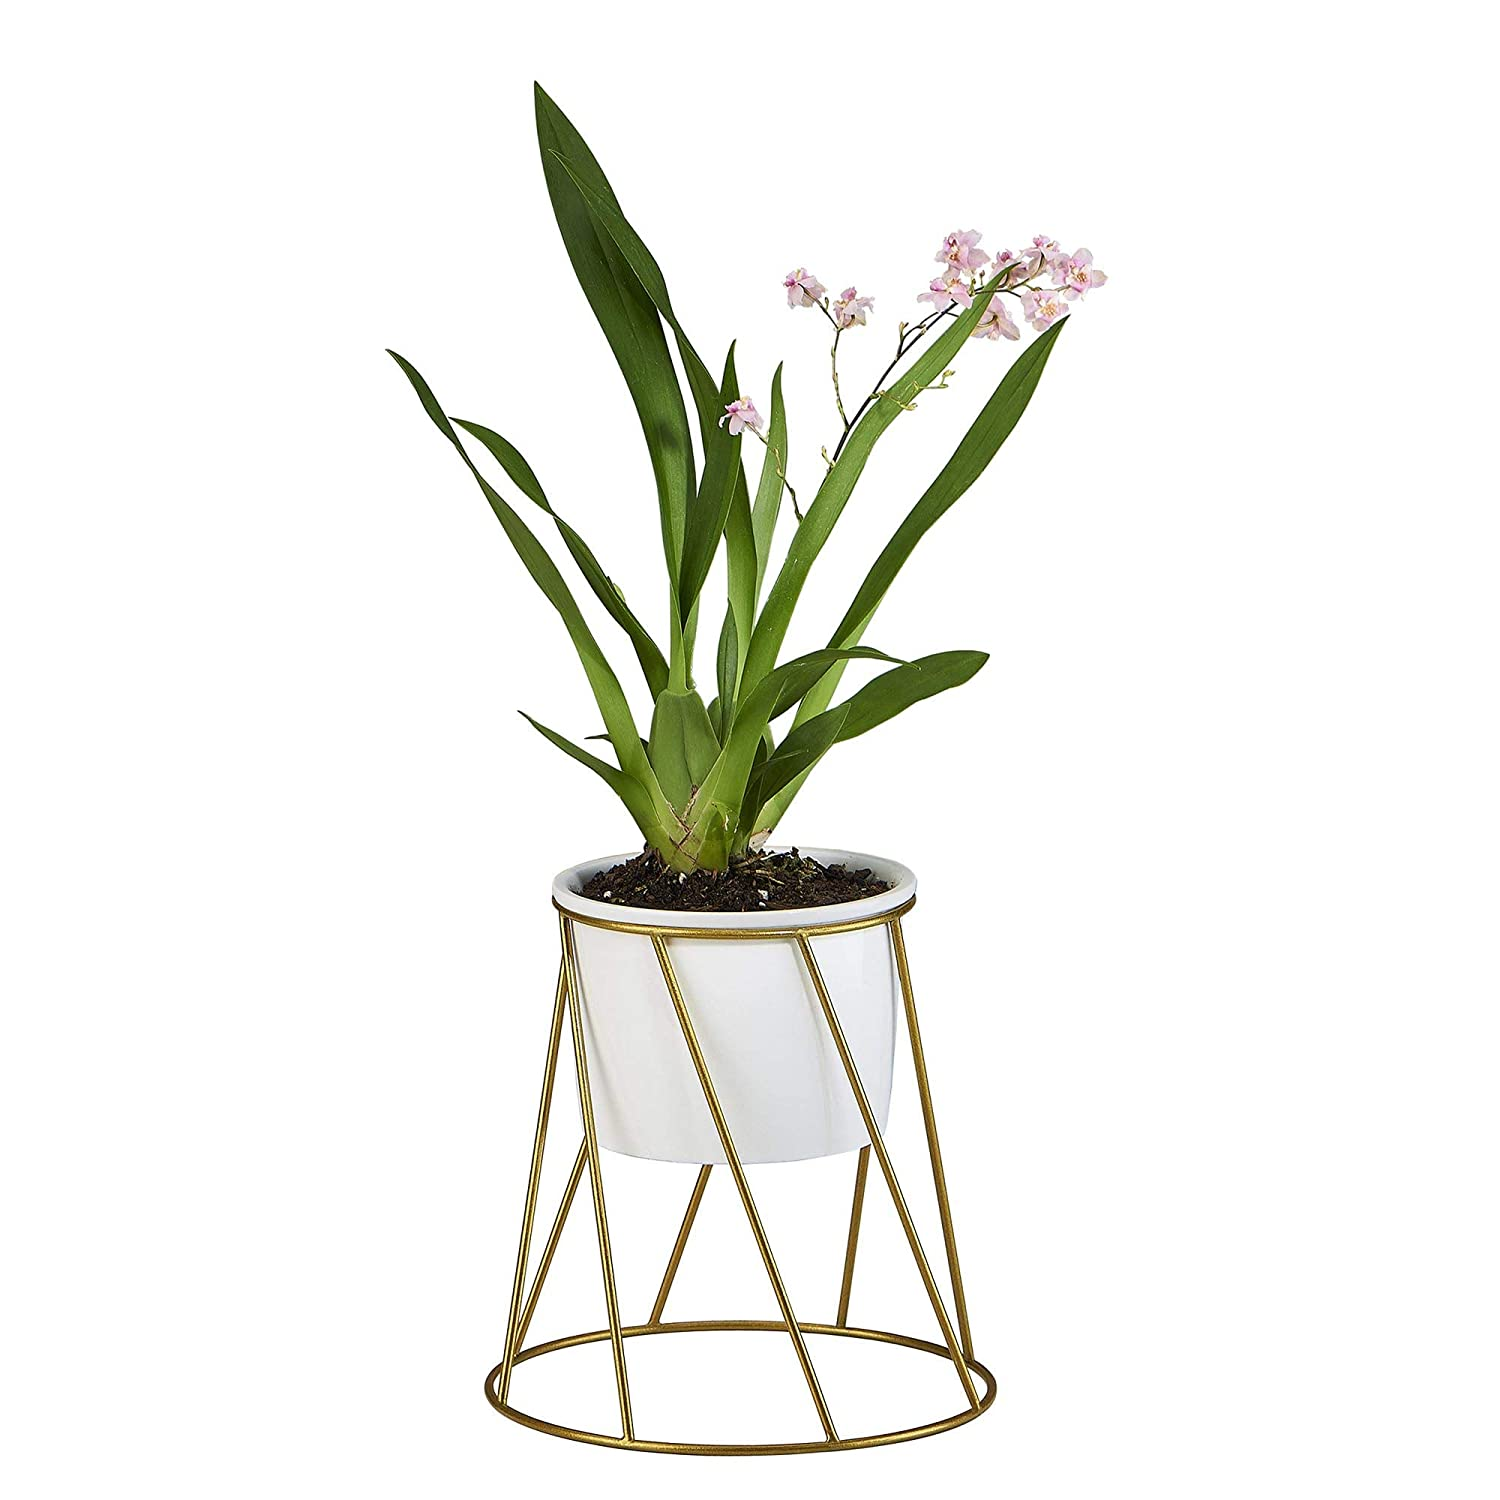 FLOWERPLUS Planter Pot Indoor, 4.33 Inch White Ceramic Medium Succulent Cactus Flower Plant Round Bowl with Metal Stand Holder and Plants Sign for Indoors Outdoor Home Garden Kitchen Decor Golden